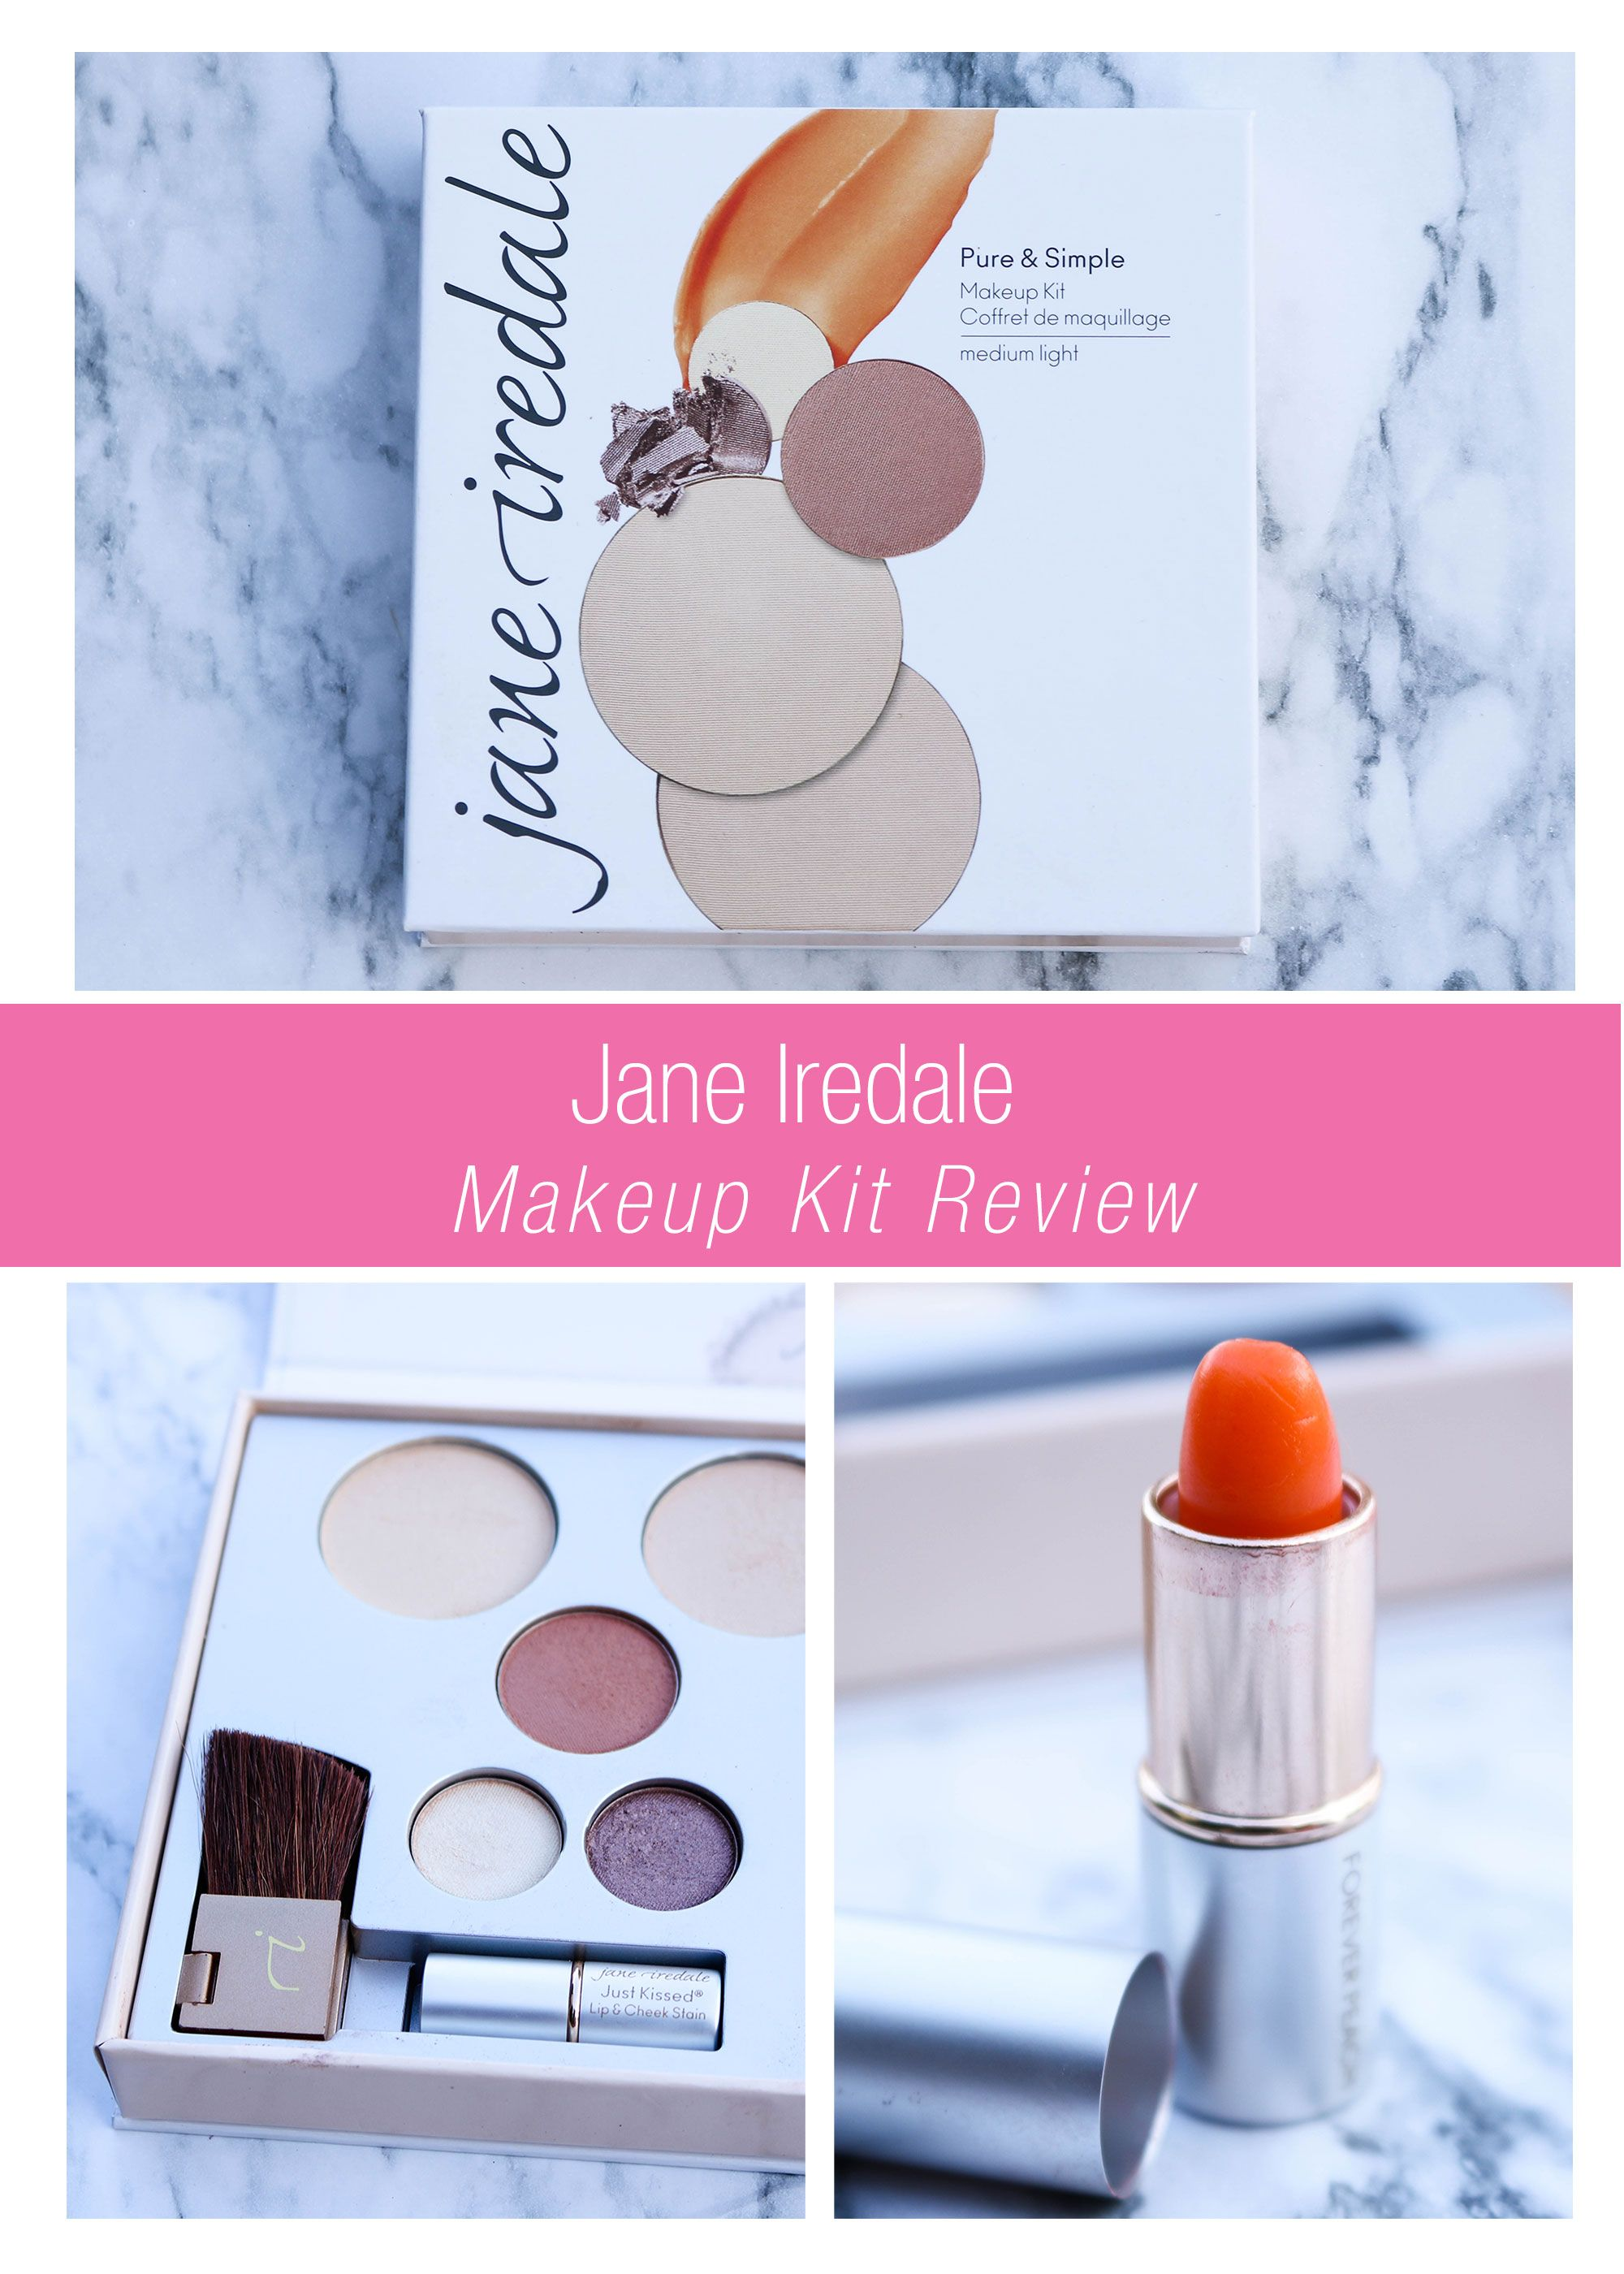 Jane Iredale Pure & Simple Makeup Kit Review (With images